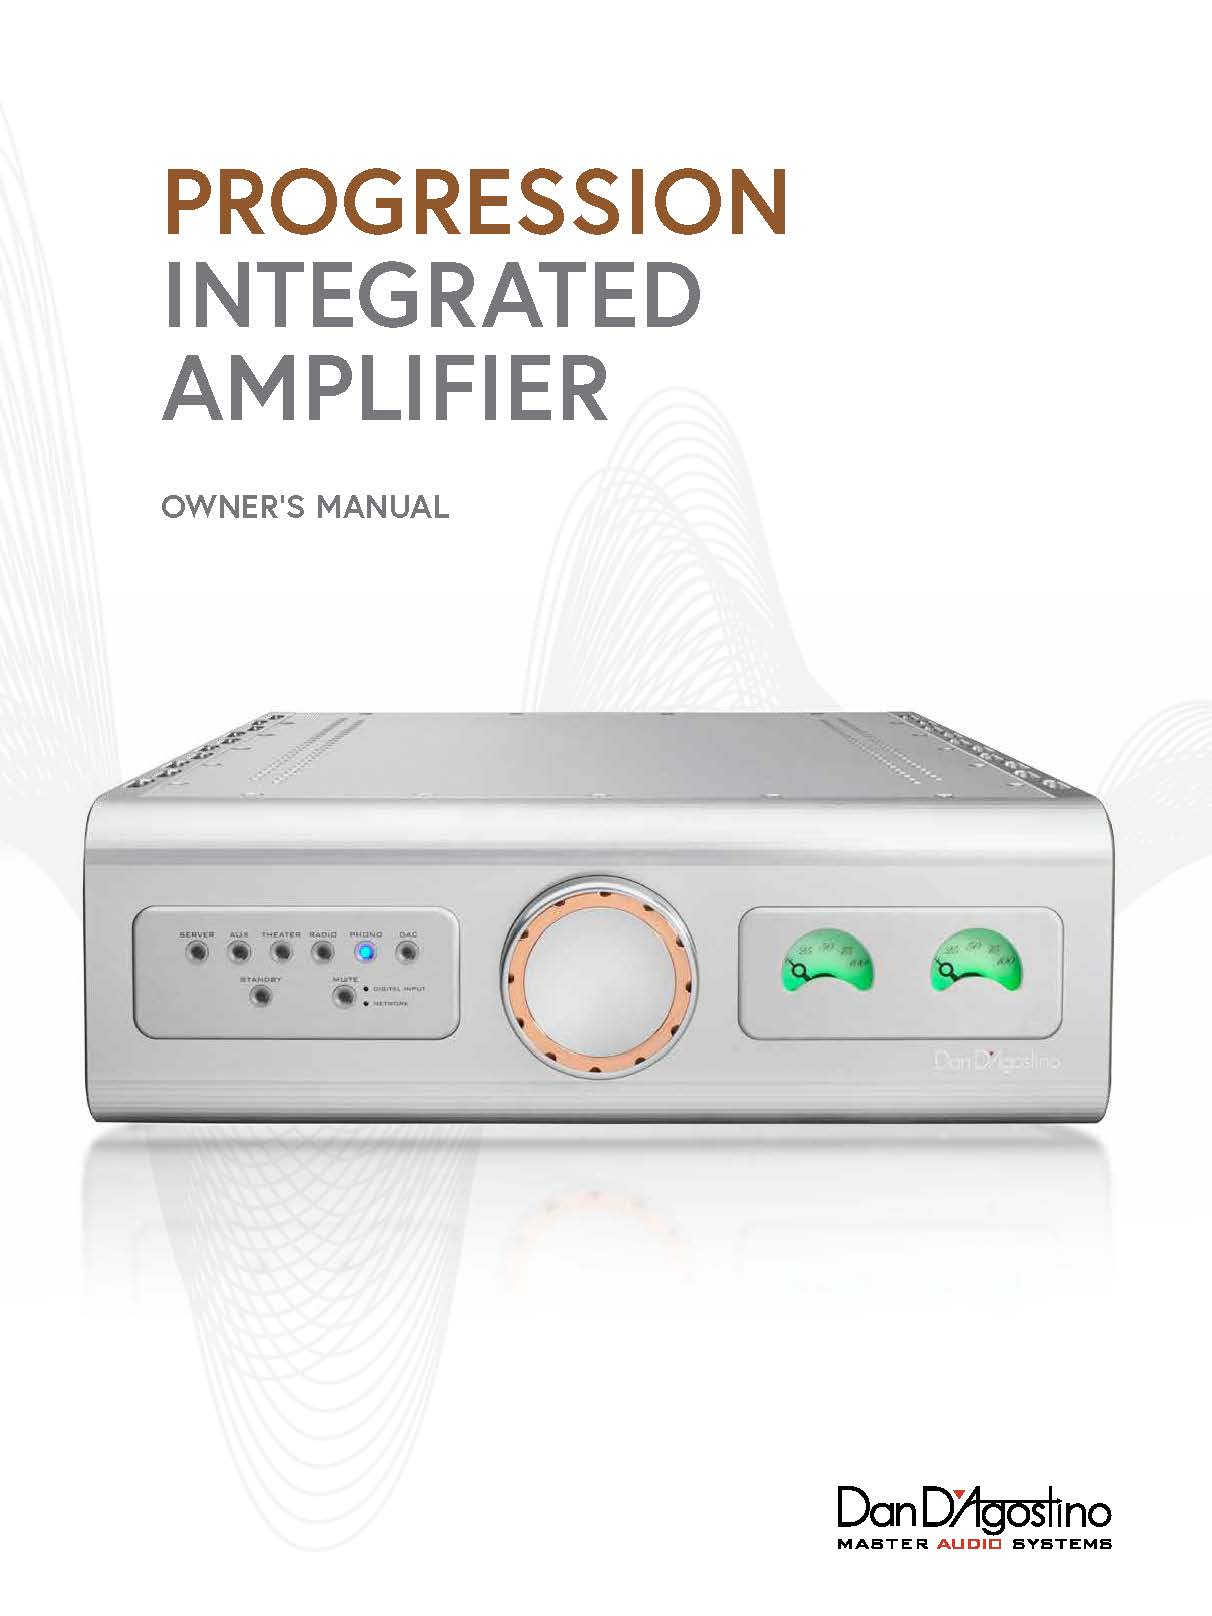 Dan D'Agostino Progression Integrated Amplifier Owner Manual - Norman Audio